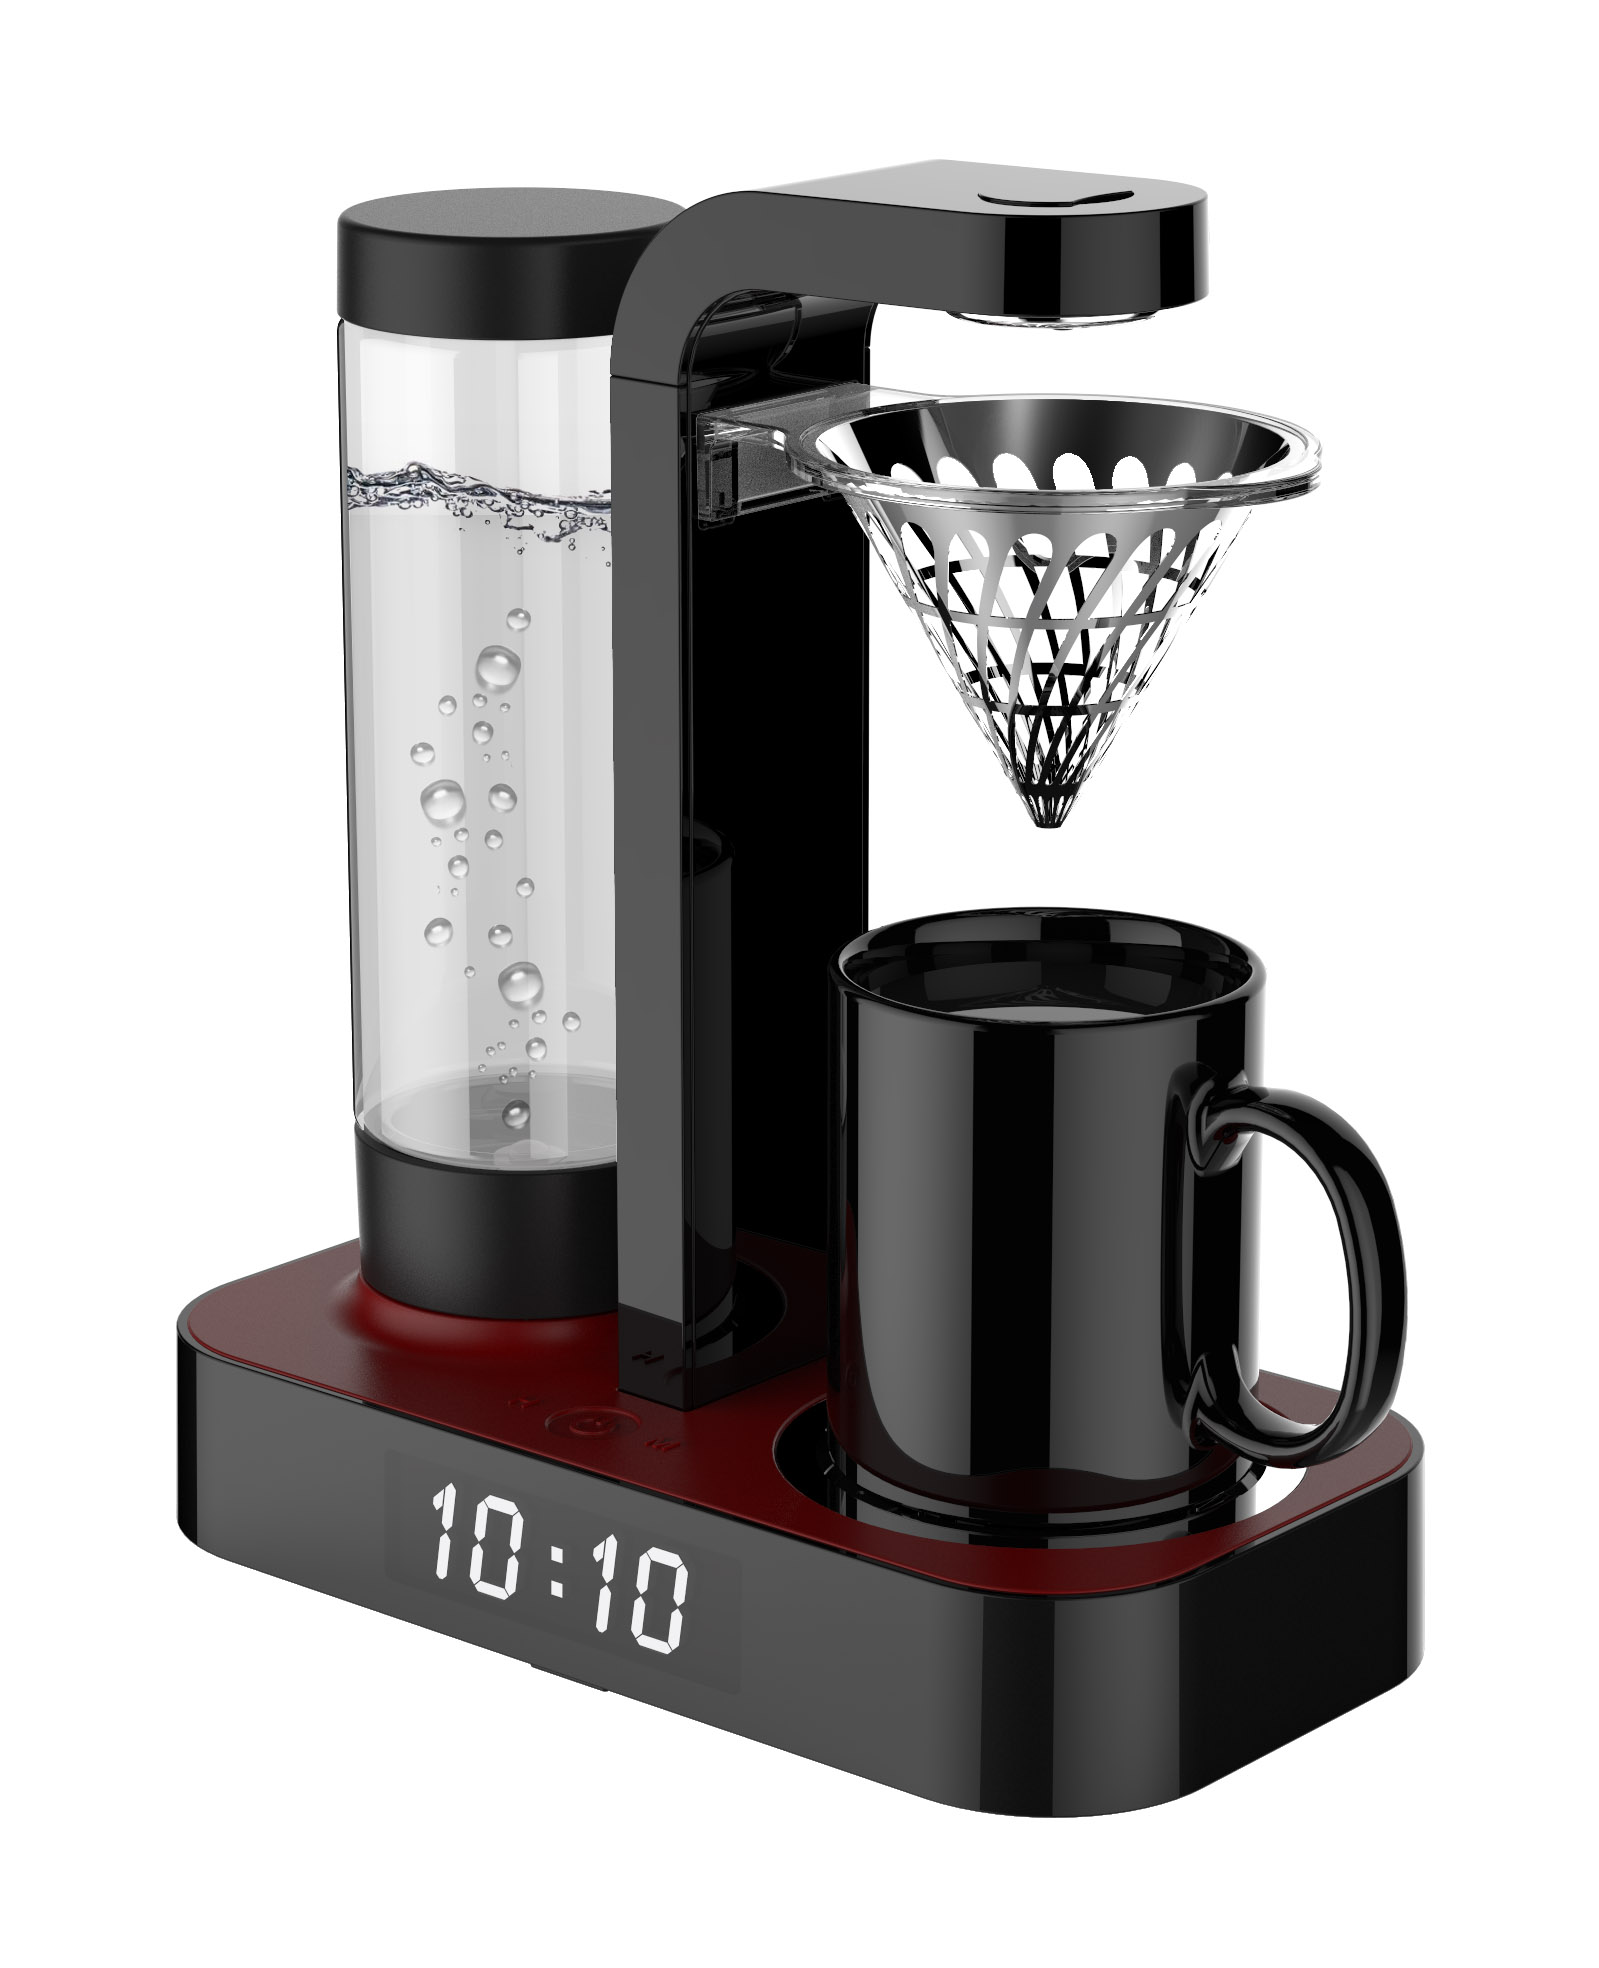 HOMEZEST CM-602 Fashionable Timer CAFETERA Machine Ice Drip COFFEE 0.5L 4 Maker CB Ce Hotel Household Hot Water System ROHS GS